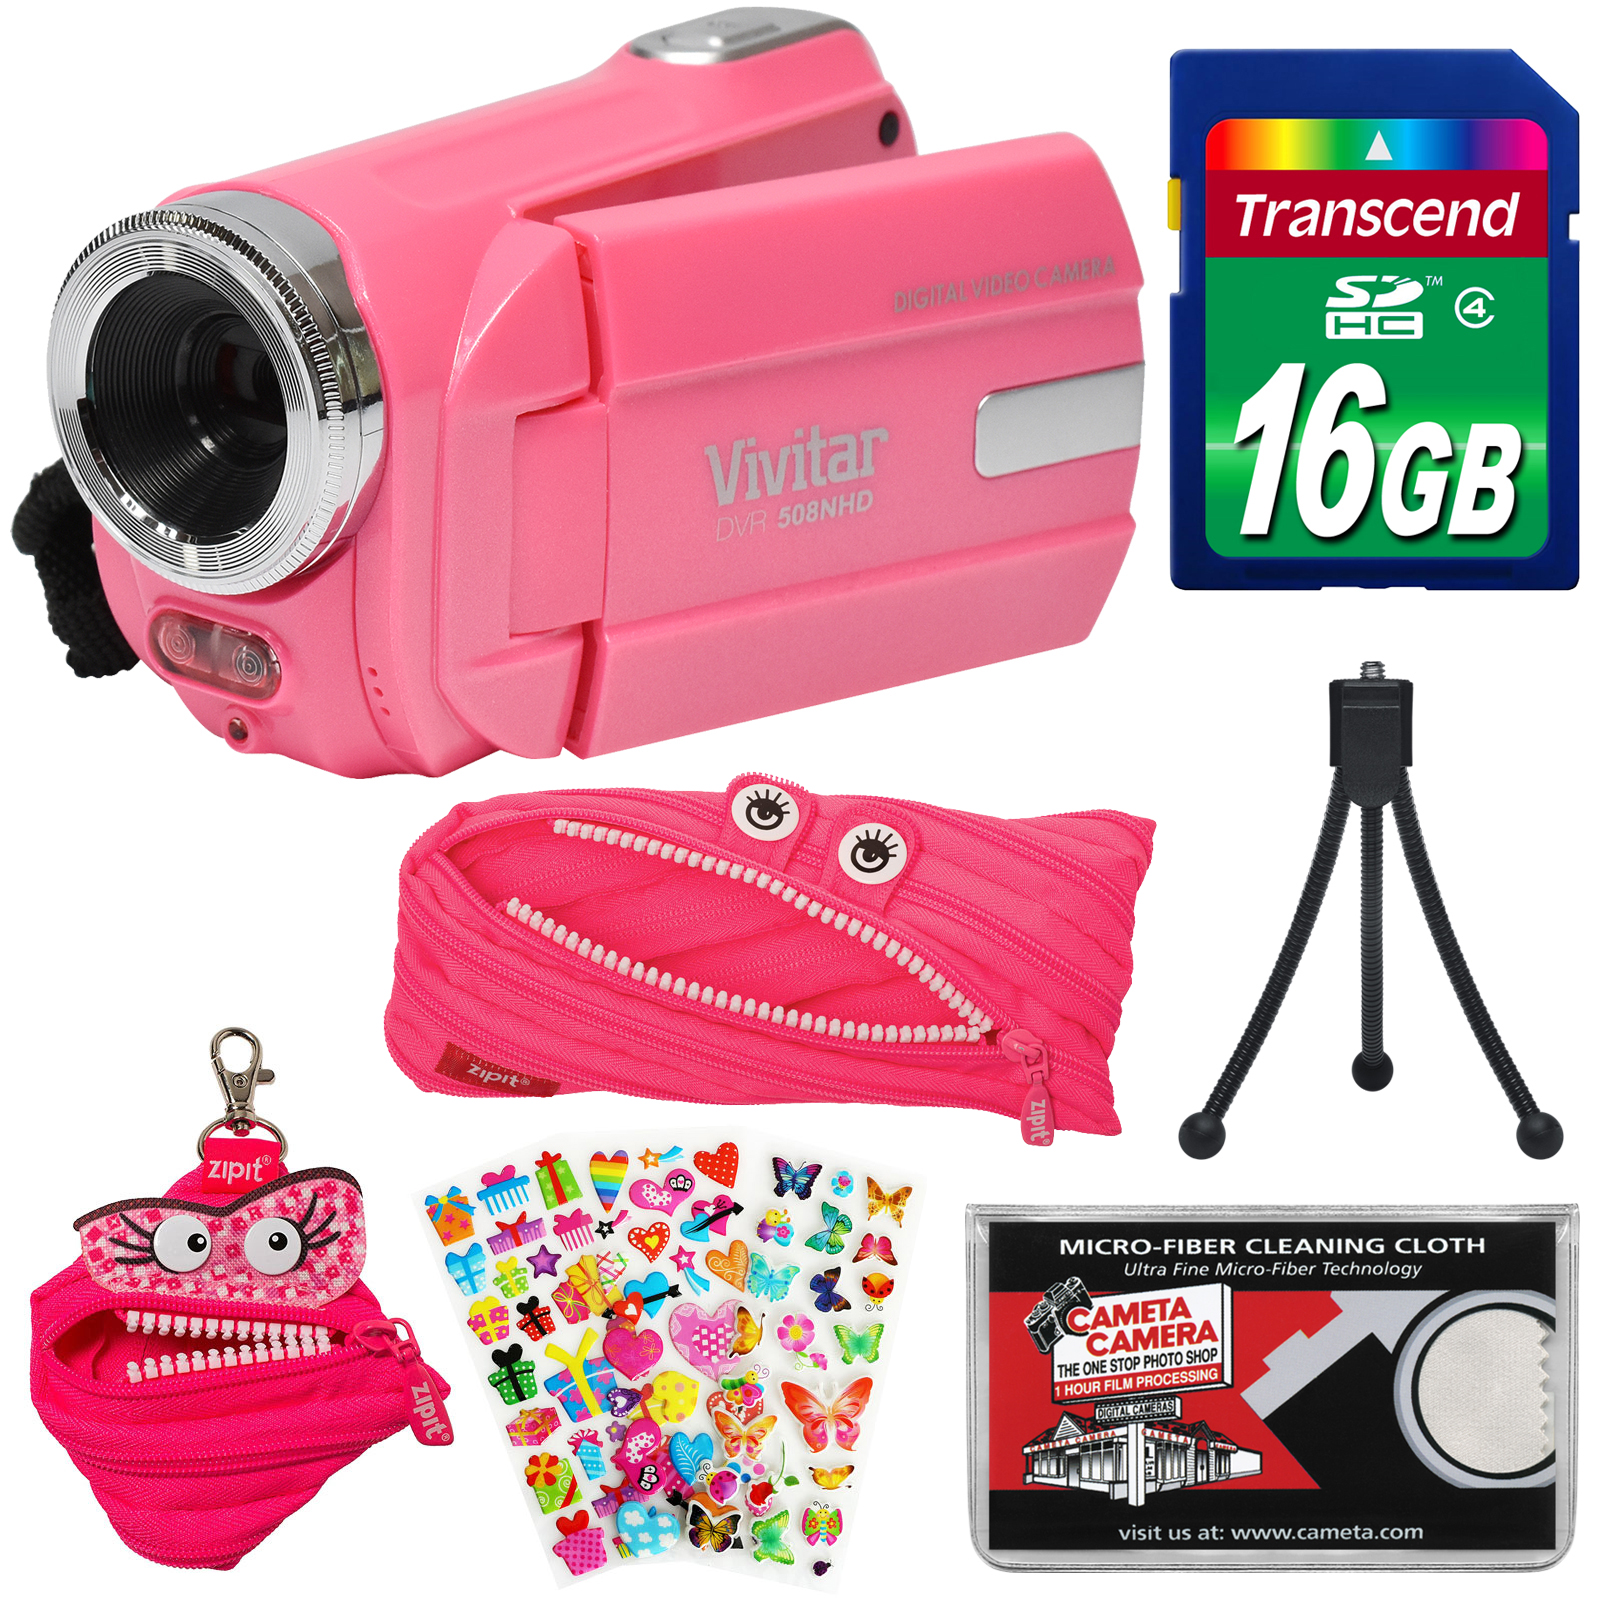 Vivitar DVR 508 NHD Digital Video Camera Camcorder (Bubble Gum Pink) with 16GB Card + Monster Case + Pouch +... by Vivitar